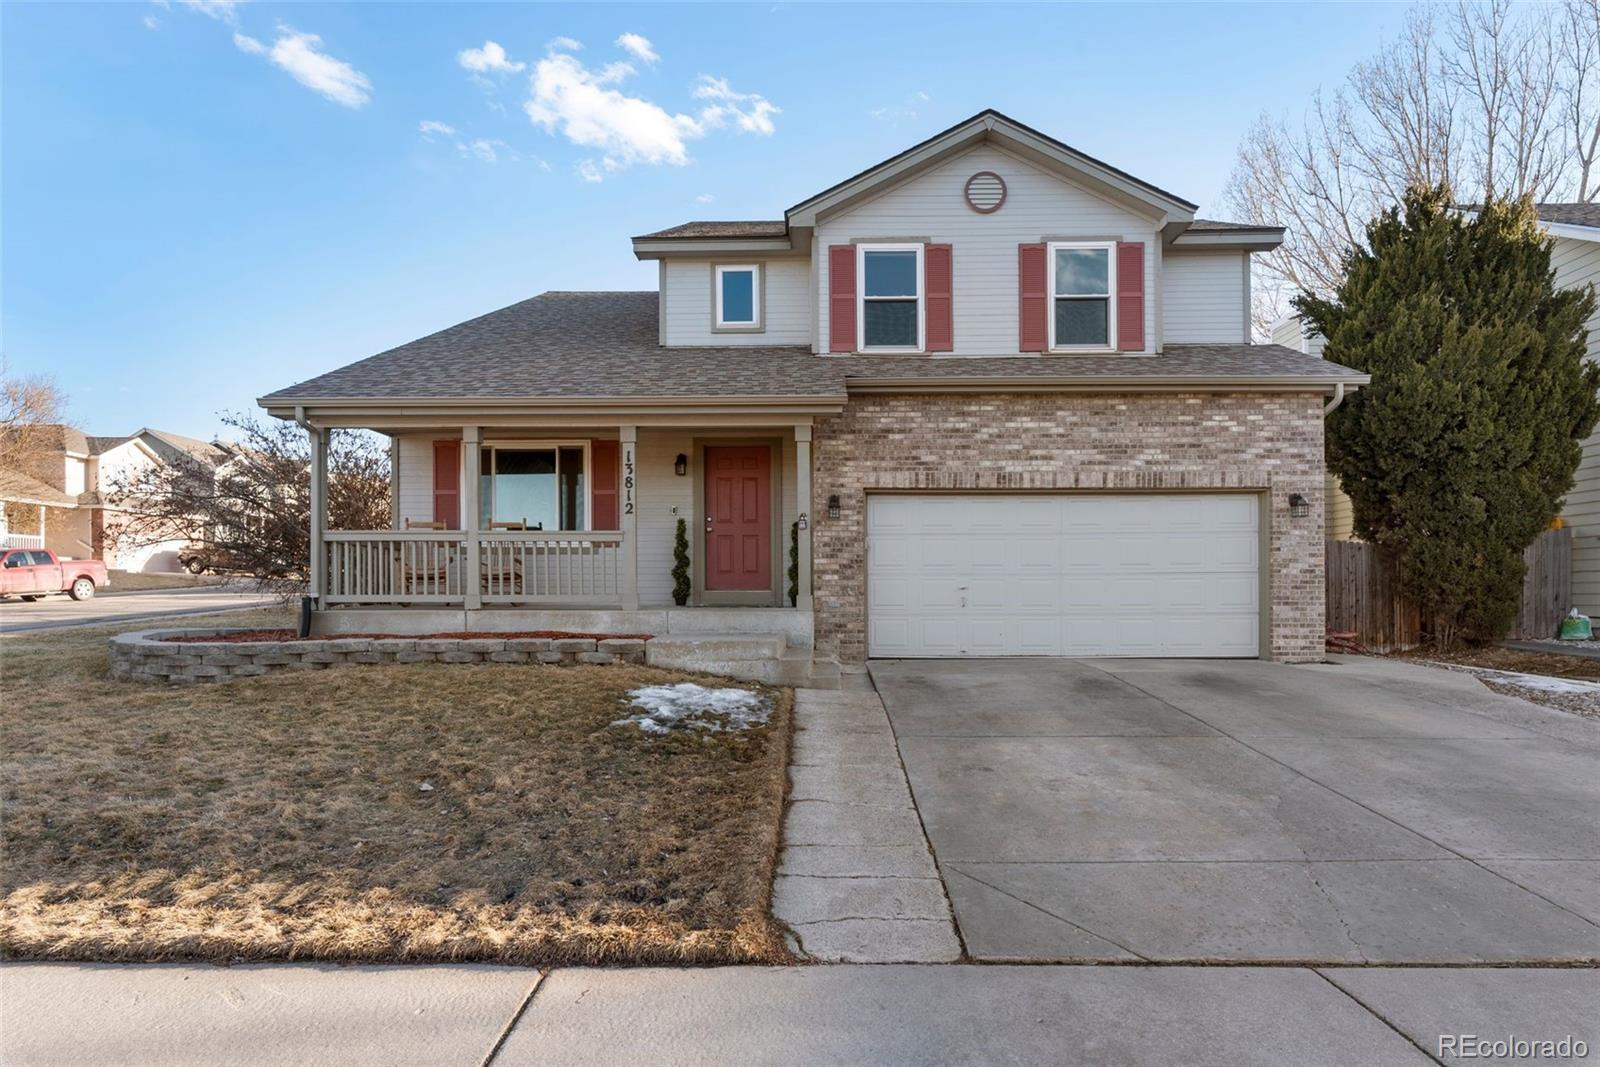 13812 W 64th Place, Arvada, CO 80004 - #: 9727592